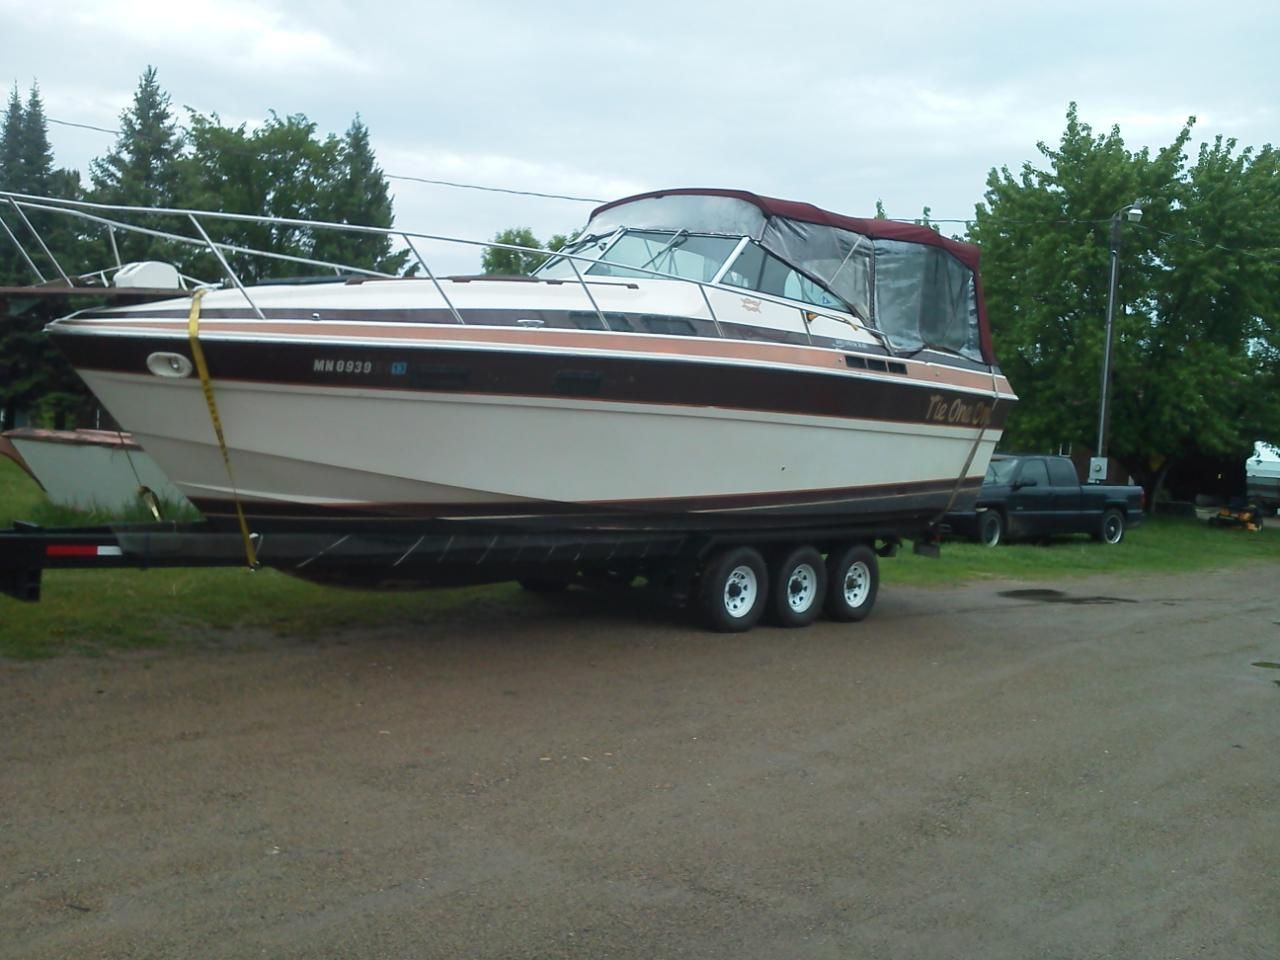 1981 Wellcraft 310 Express Power Boat For Sale Www